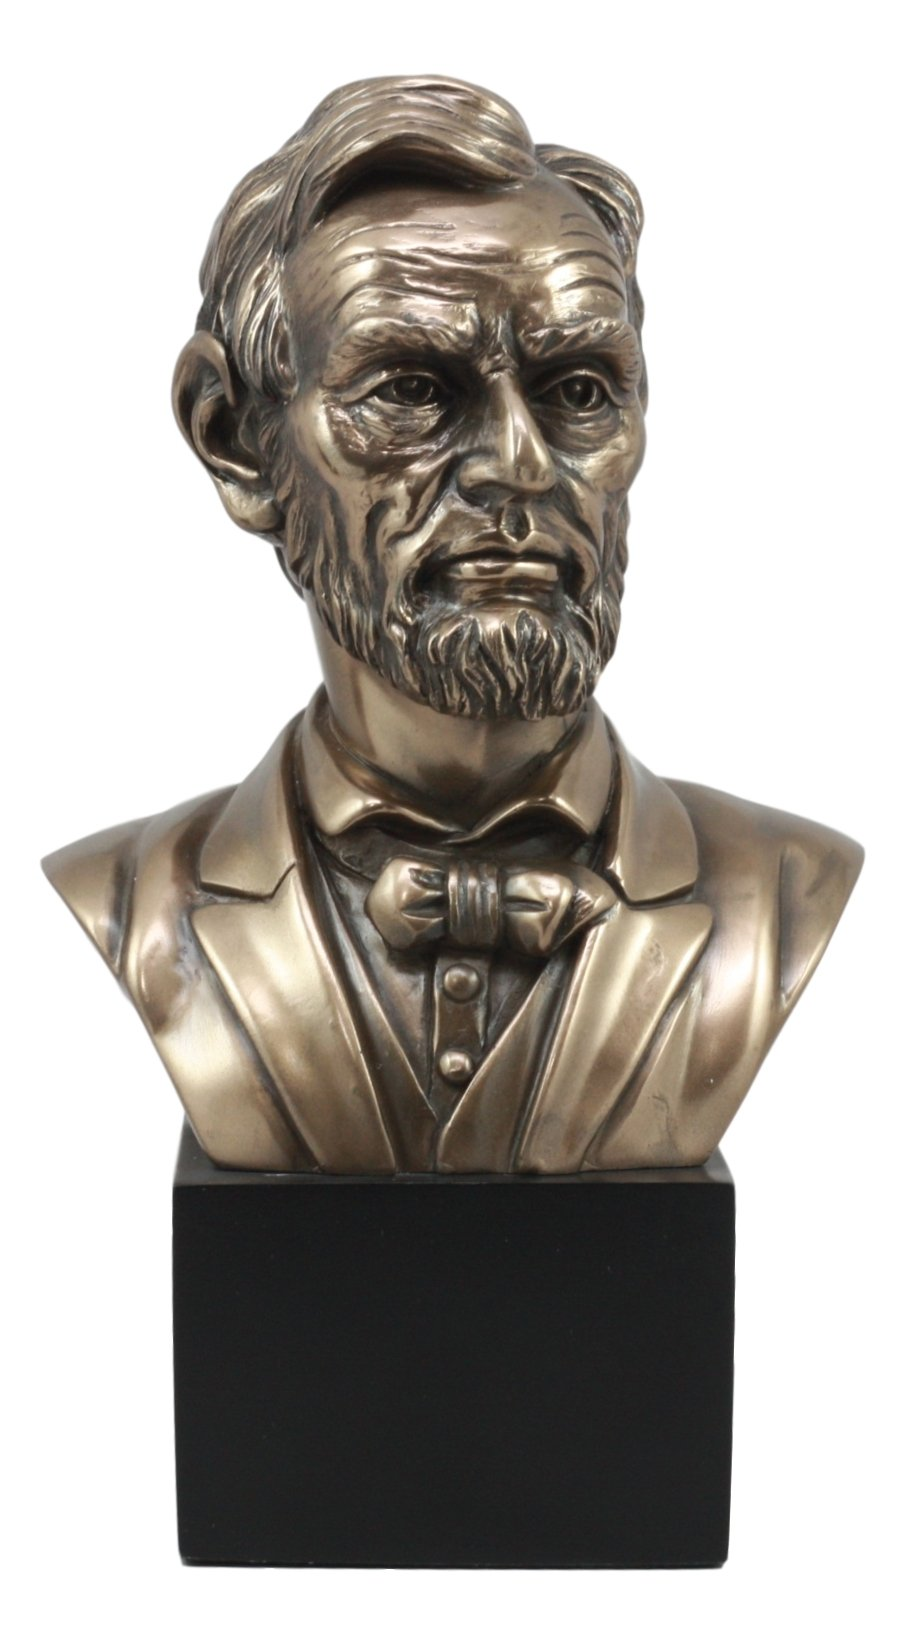 Ebros United States Of America 16th President Abraham Lincoln Bust Statue 9.25'' Tall Civil War Transcendent Leader Historical Sculpture